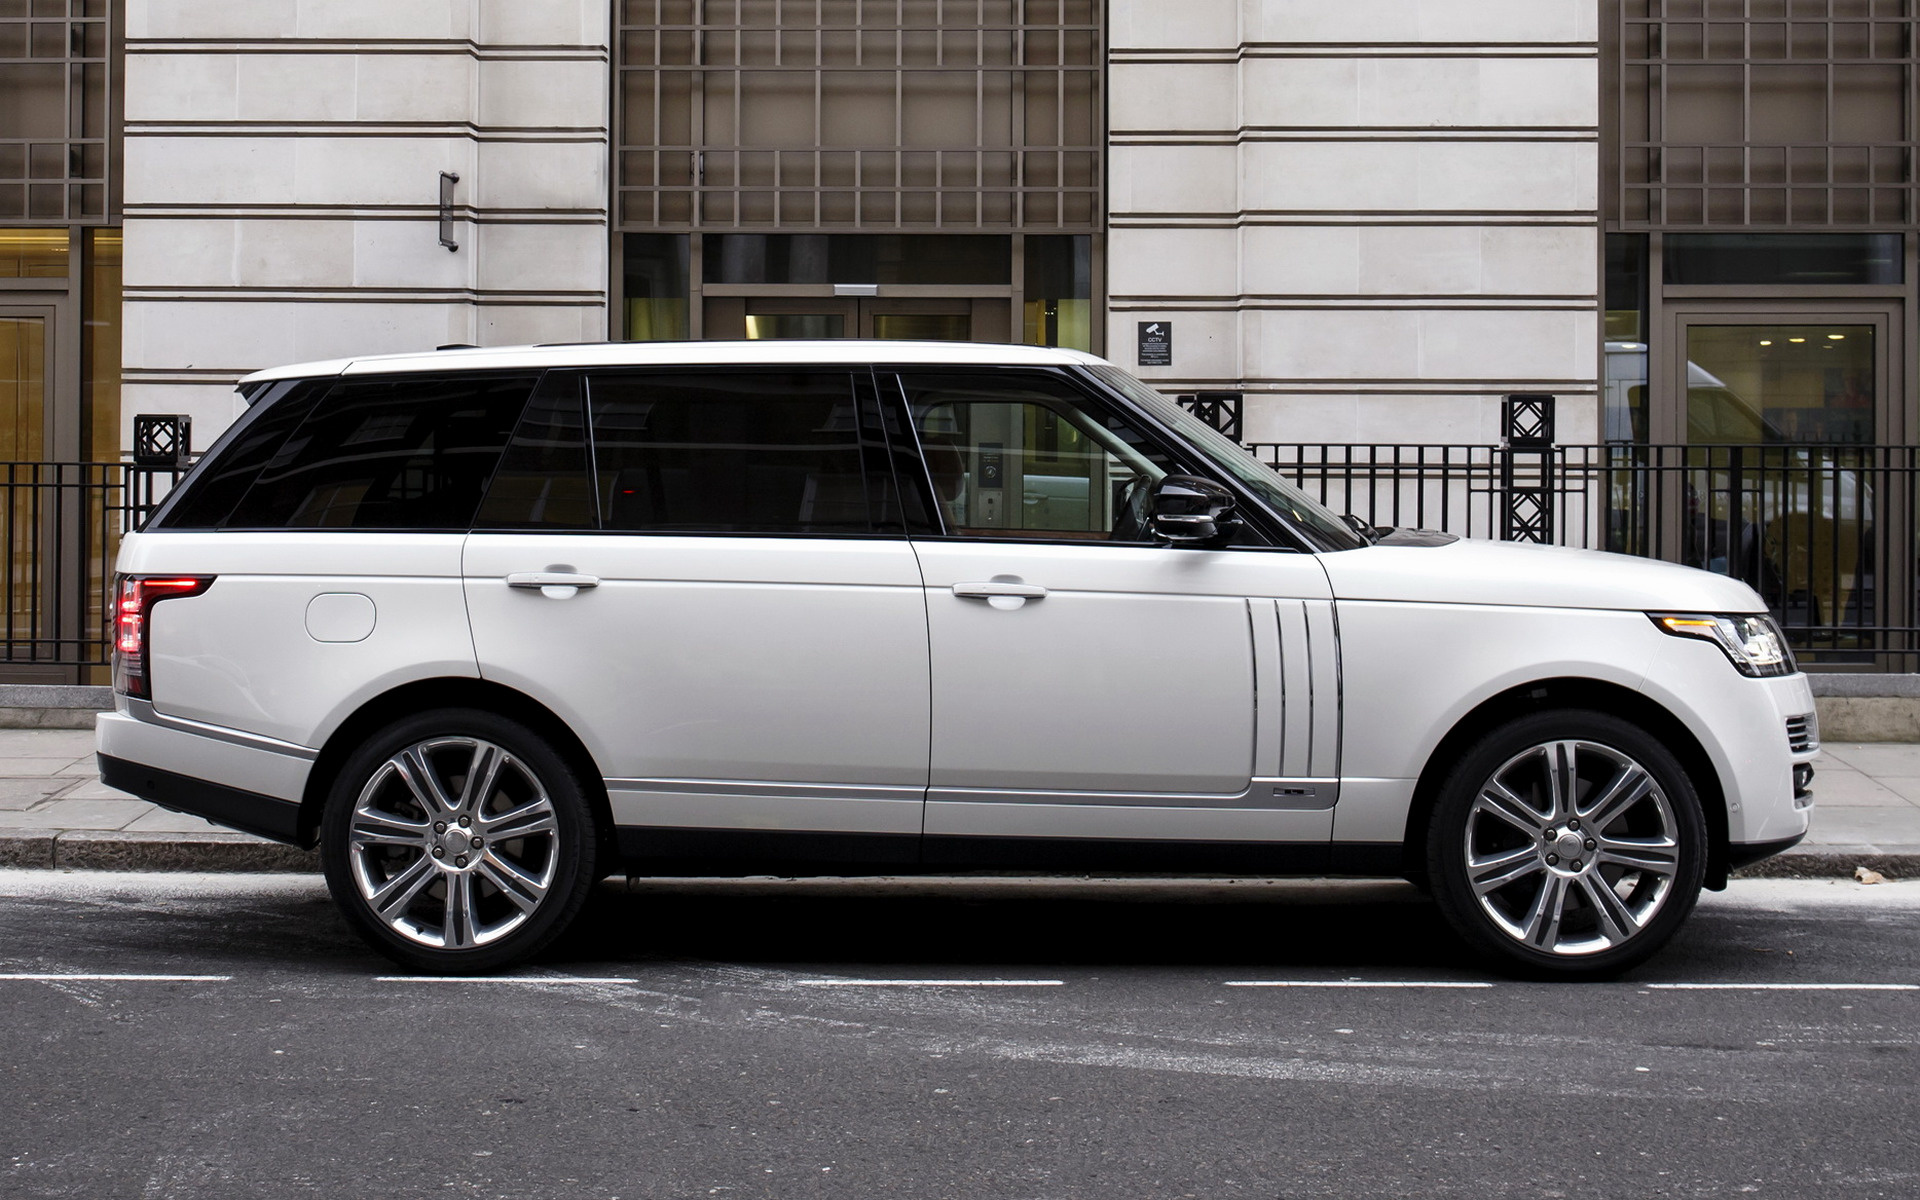 2014 Range Rover Autobiography Black [LWB] (UK ...